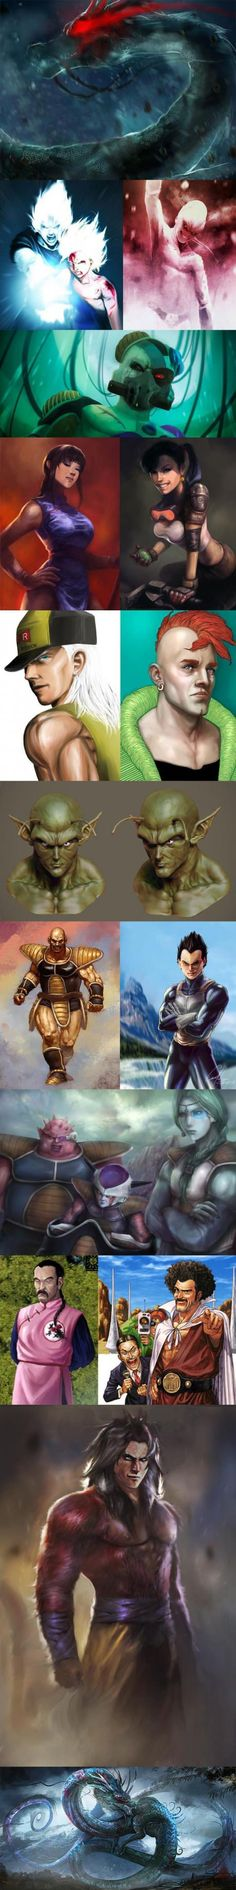 This is pretty legit! If they remade that terrible dragonball evolution, this would be awesome.